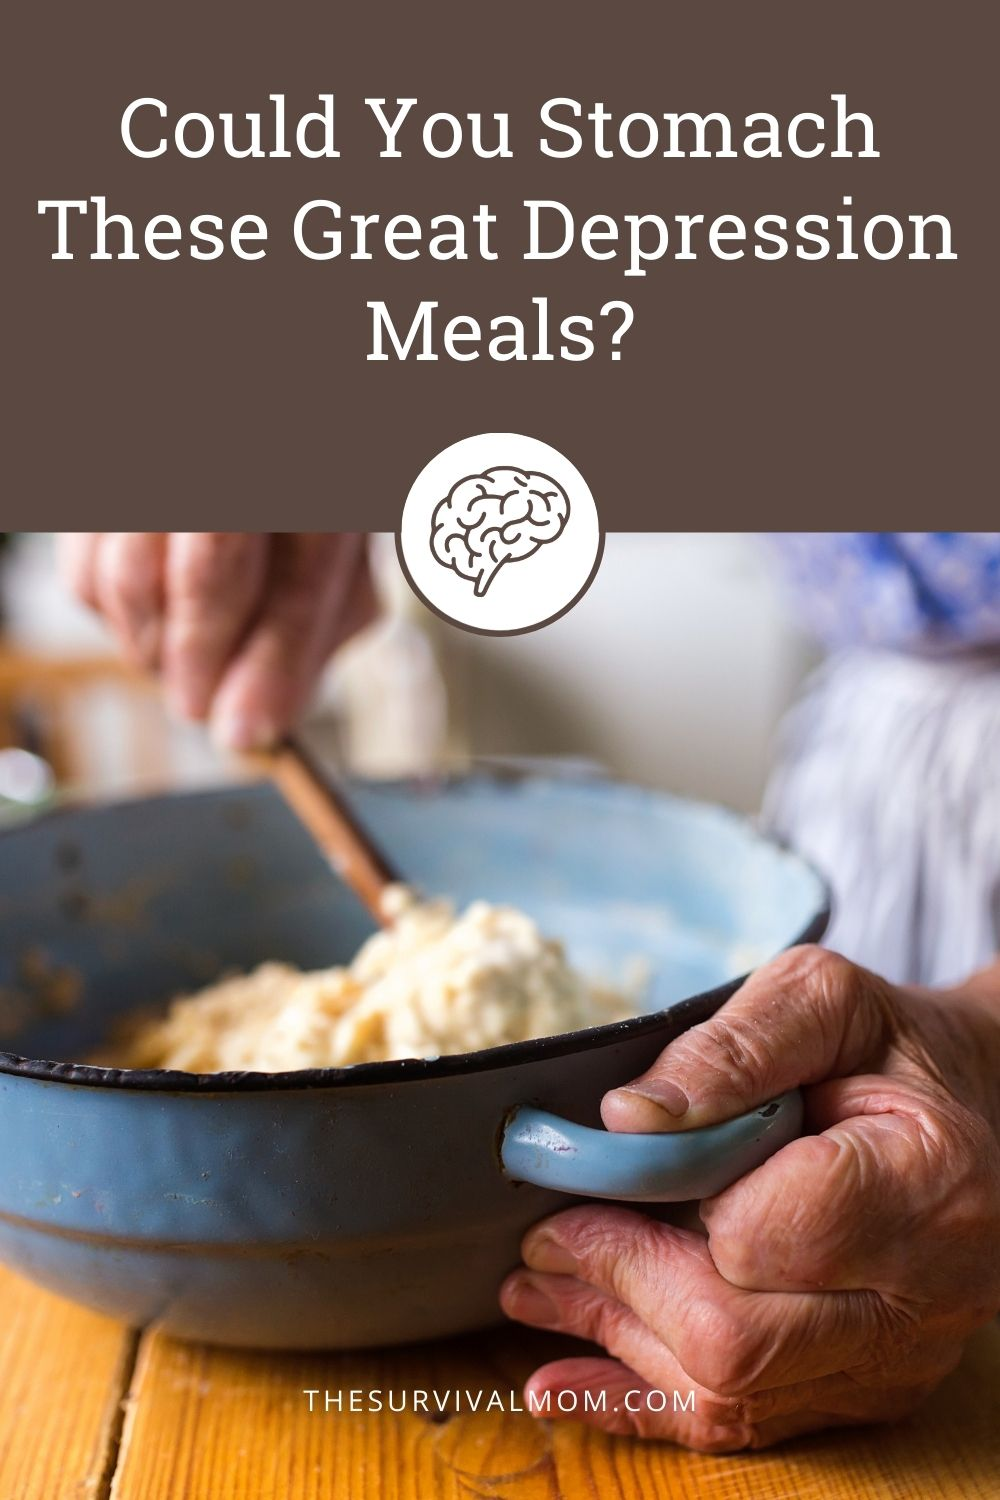 Could You Stomach These Great Depression Meals Survival Mom There are key dips seen during the great depression and the 1979 oil. stomach these great depression meals